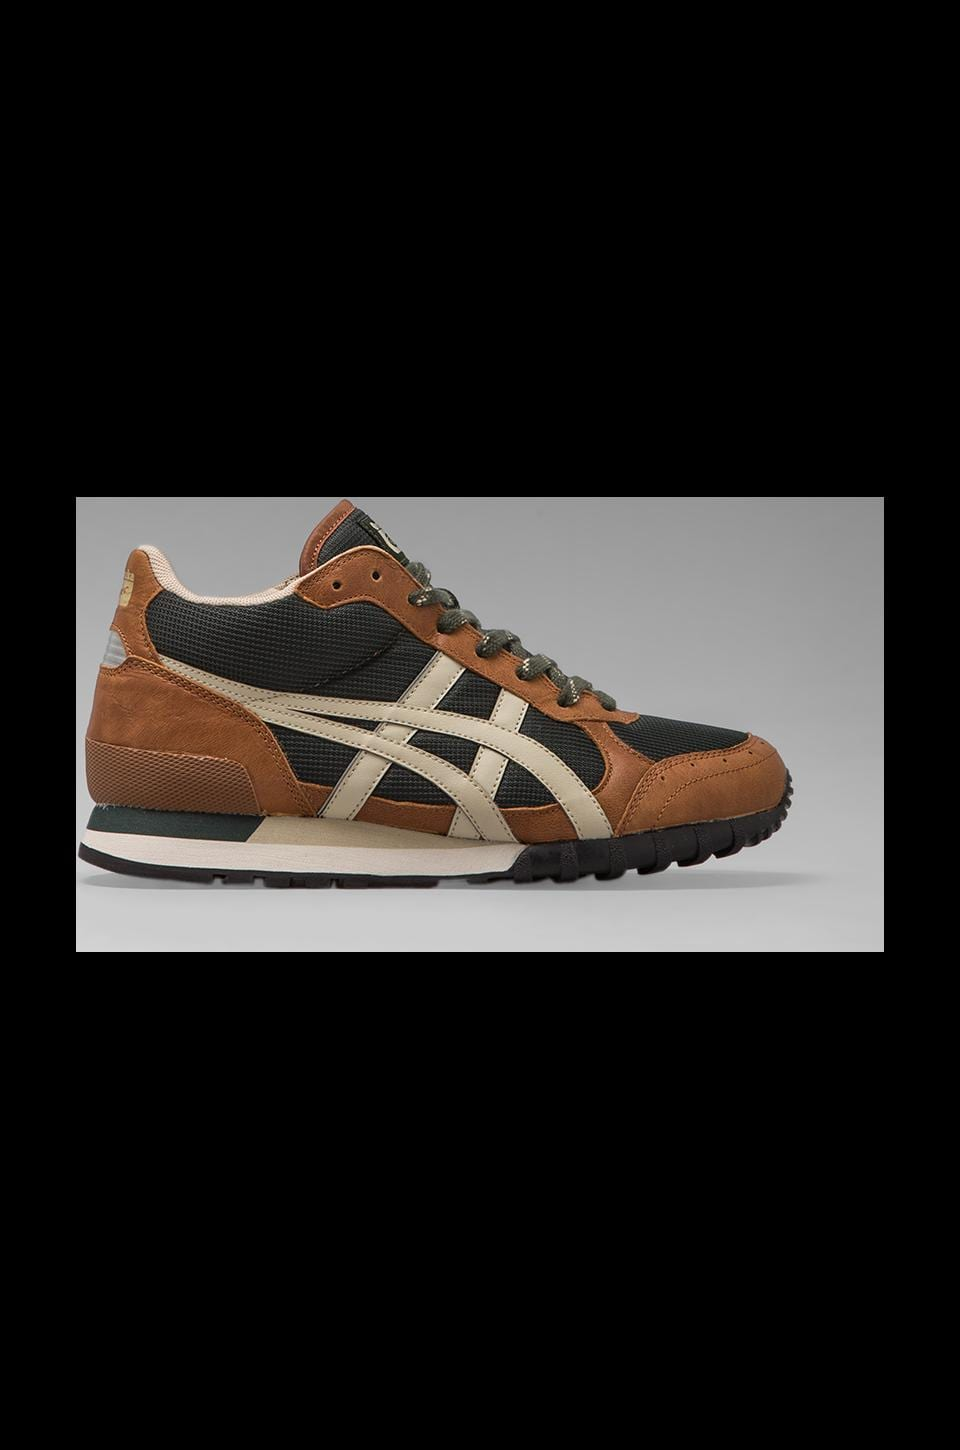 Onitsuka Tiger Colorado Eighty-Five MT in Forest Green/Taupe